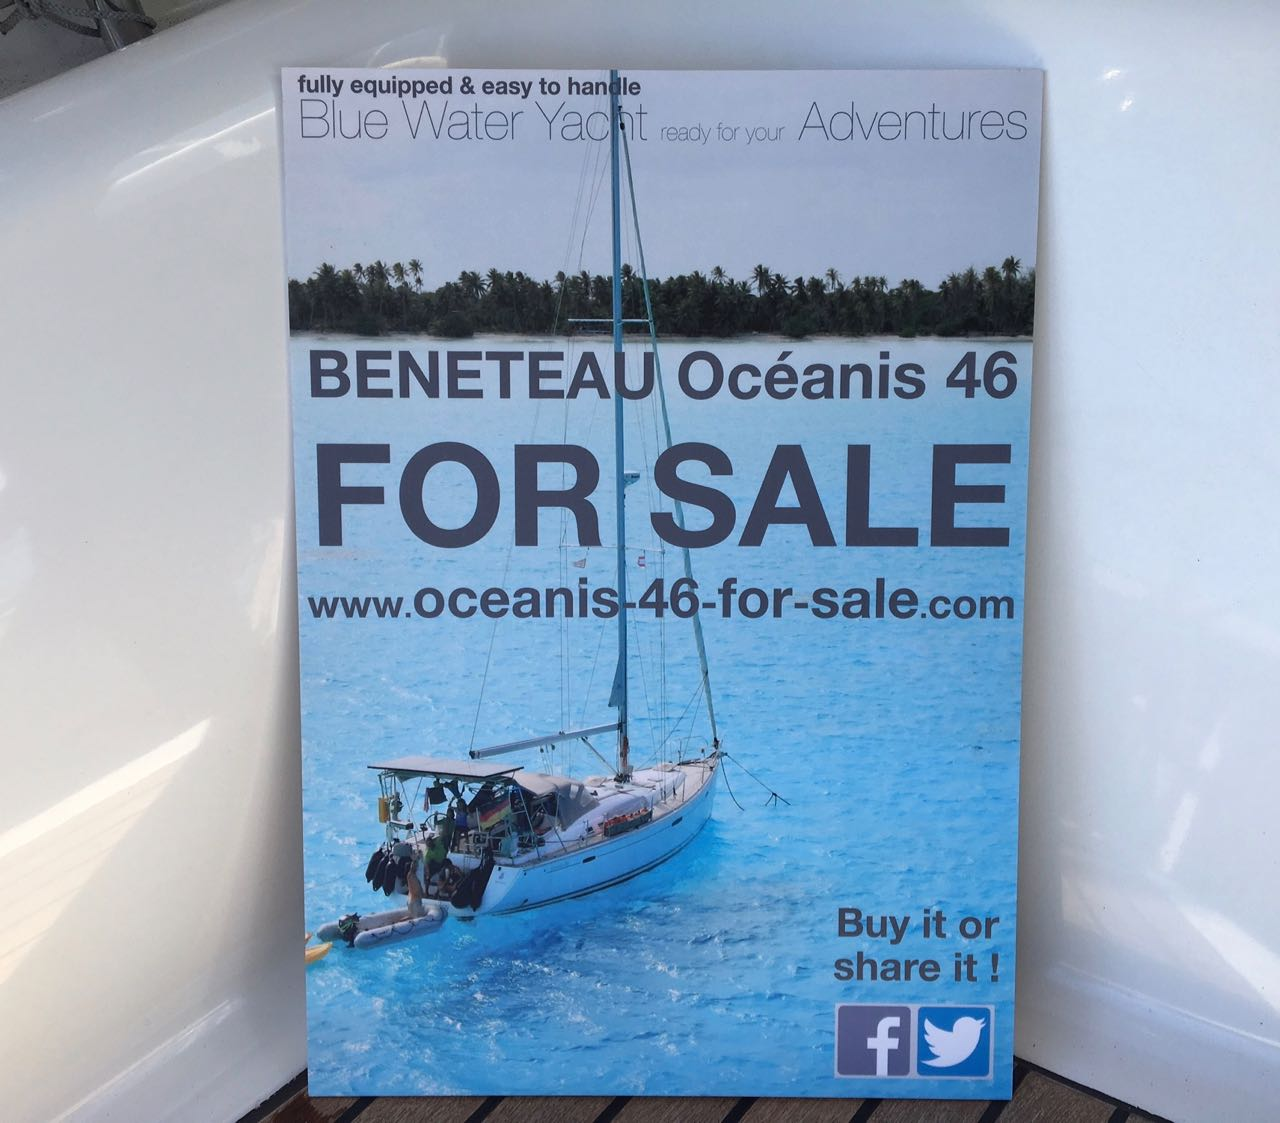 oceanis-46-for-sale.com our Oceanis 46 is up for Sale